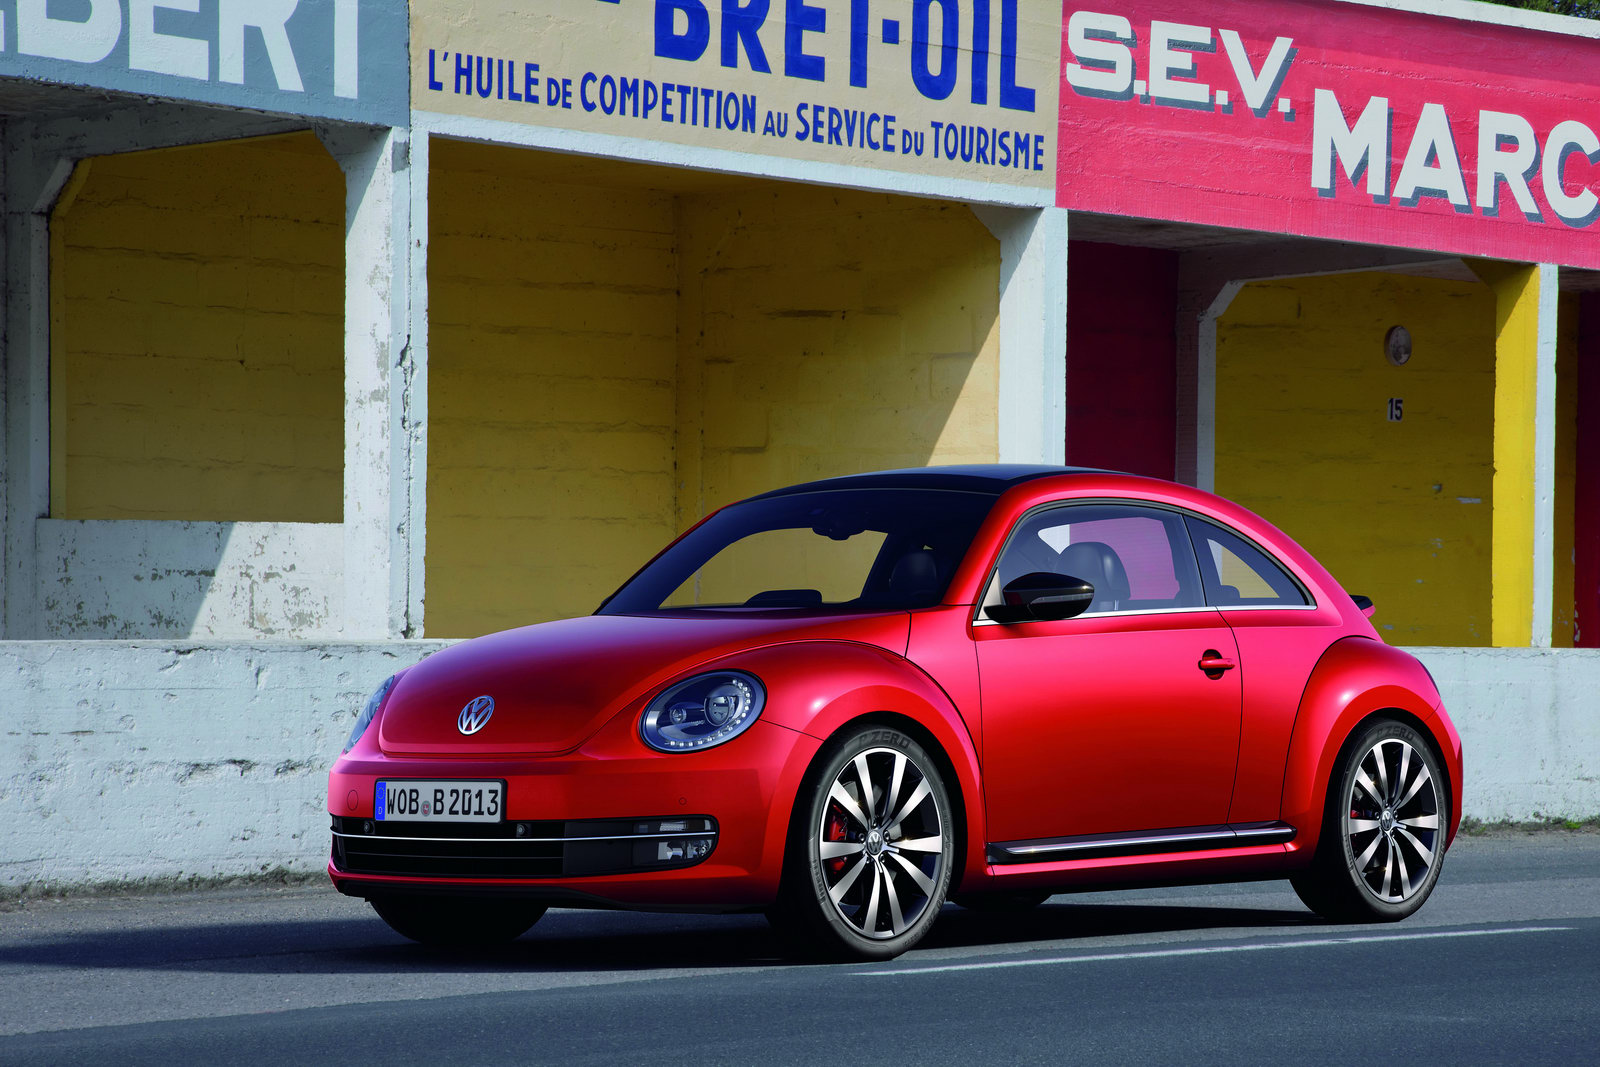 2012 volkswagen beetle photos price specifications. Black Bedroom Furniture Sets. Home Design Ideas